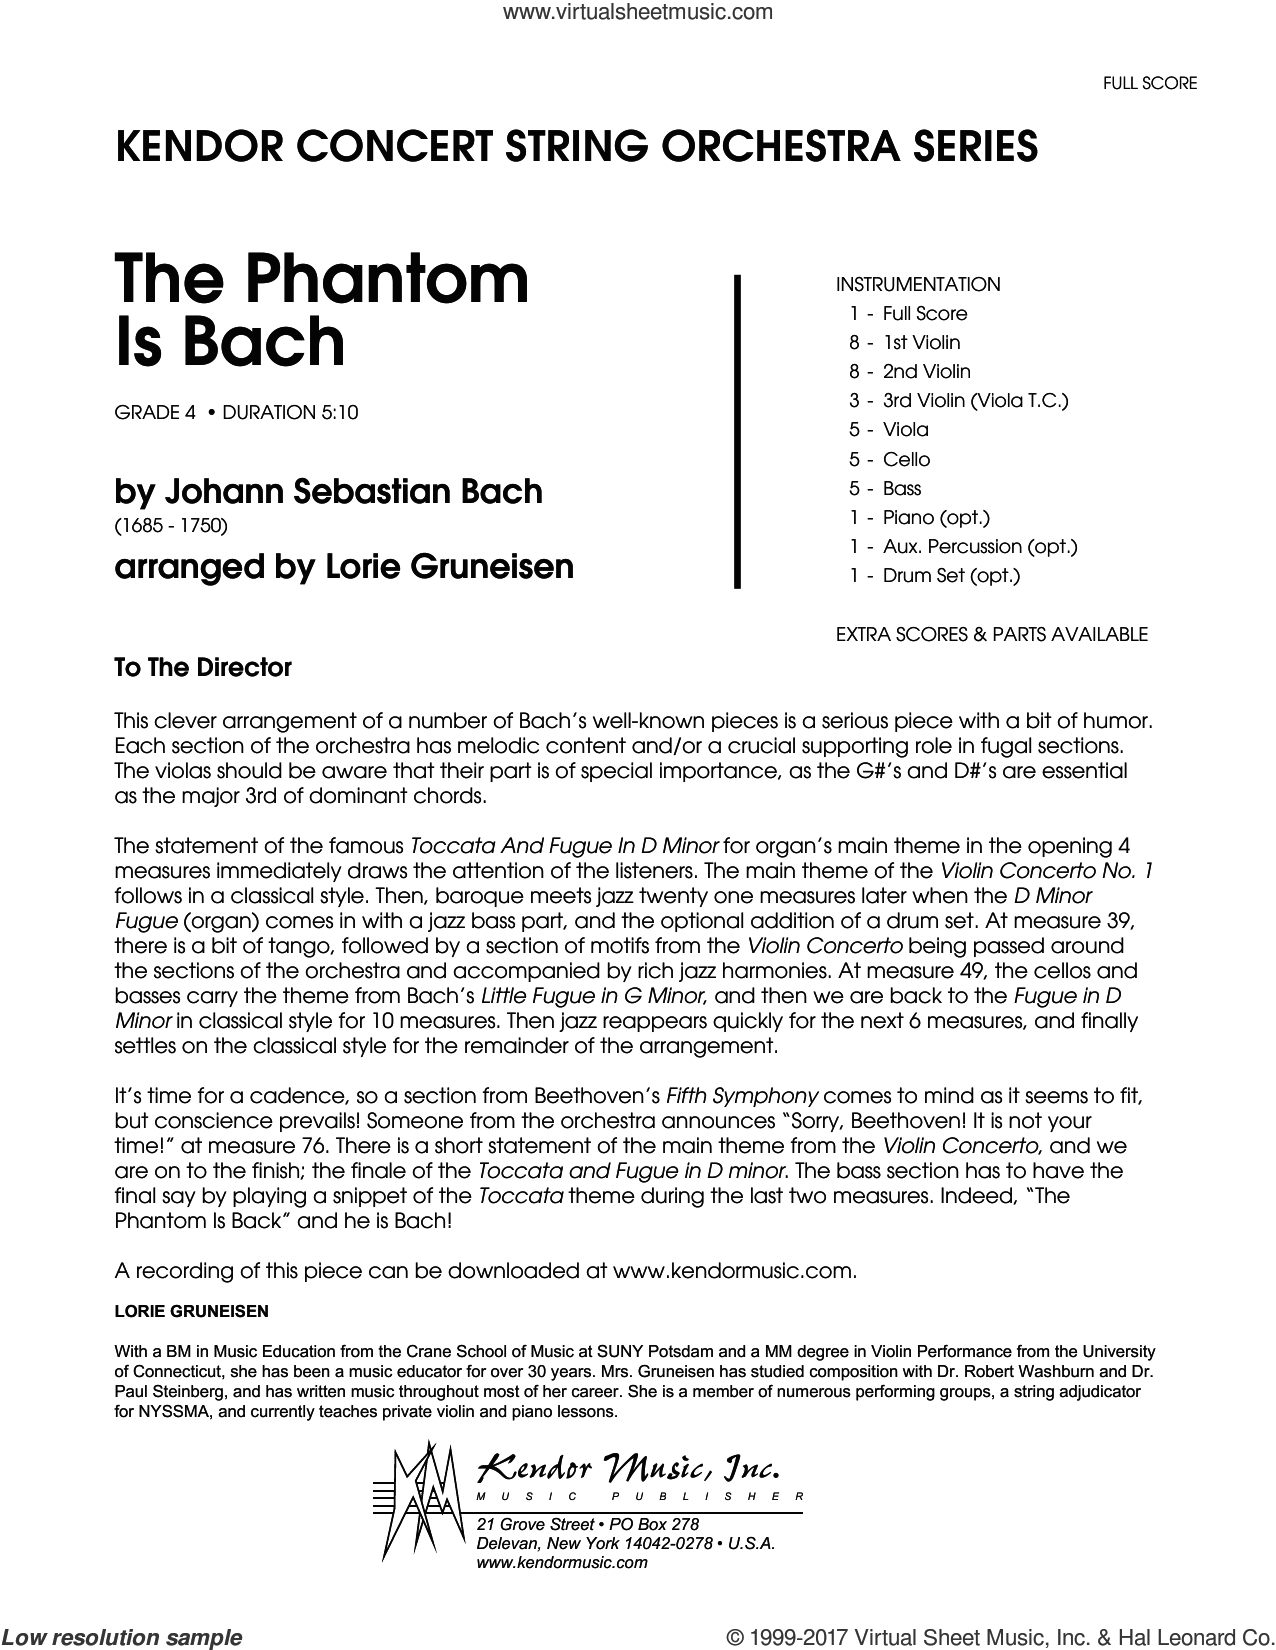 The Phantom Is Bach (COMPLETE) sheet music for orchestra by Johann Sebastian Bach and Lorie Gruneisen, classical score, intermediate skill level